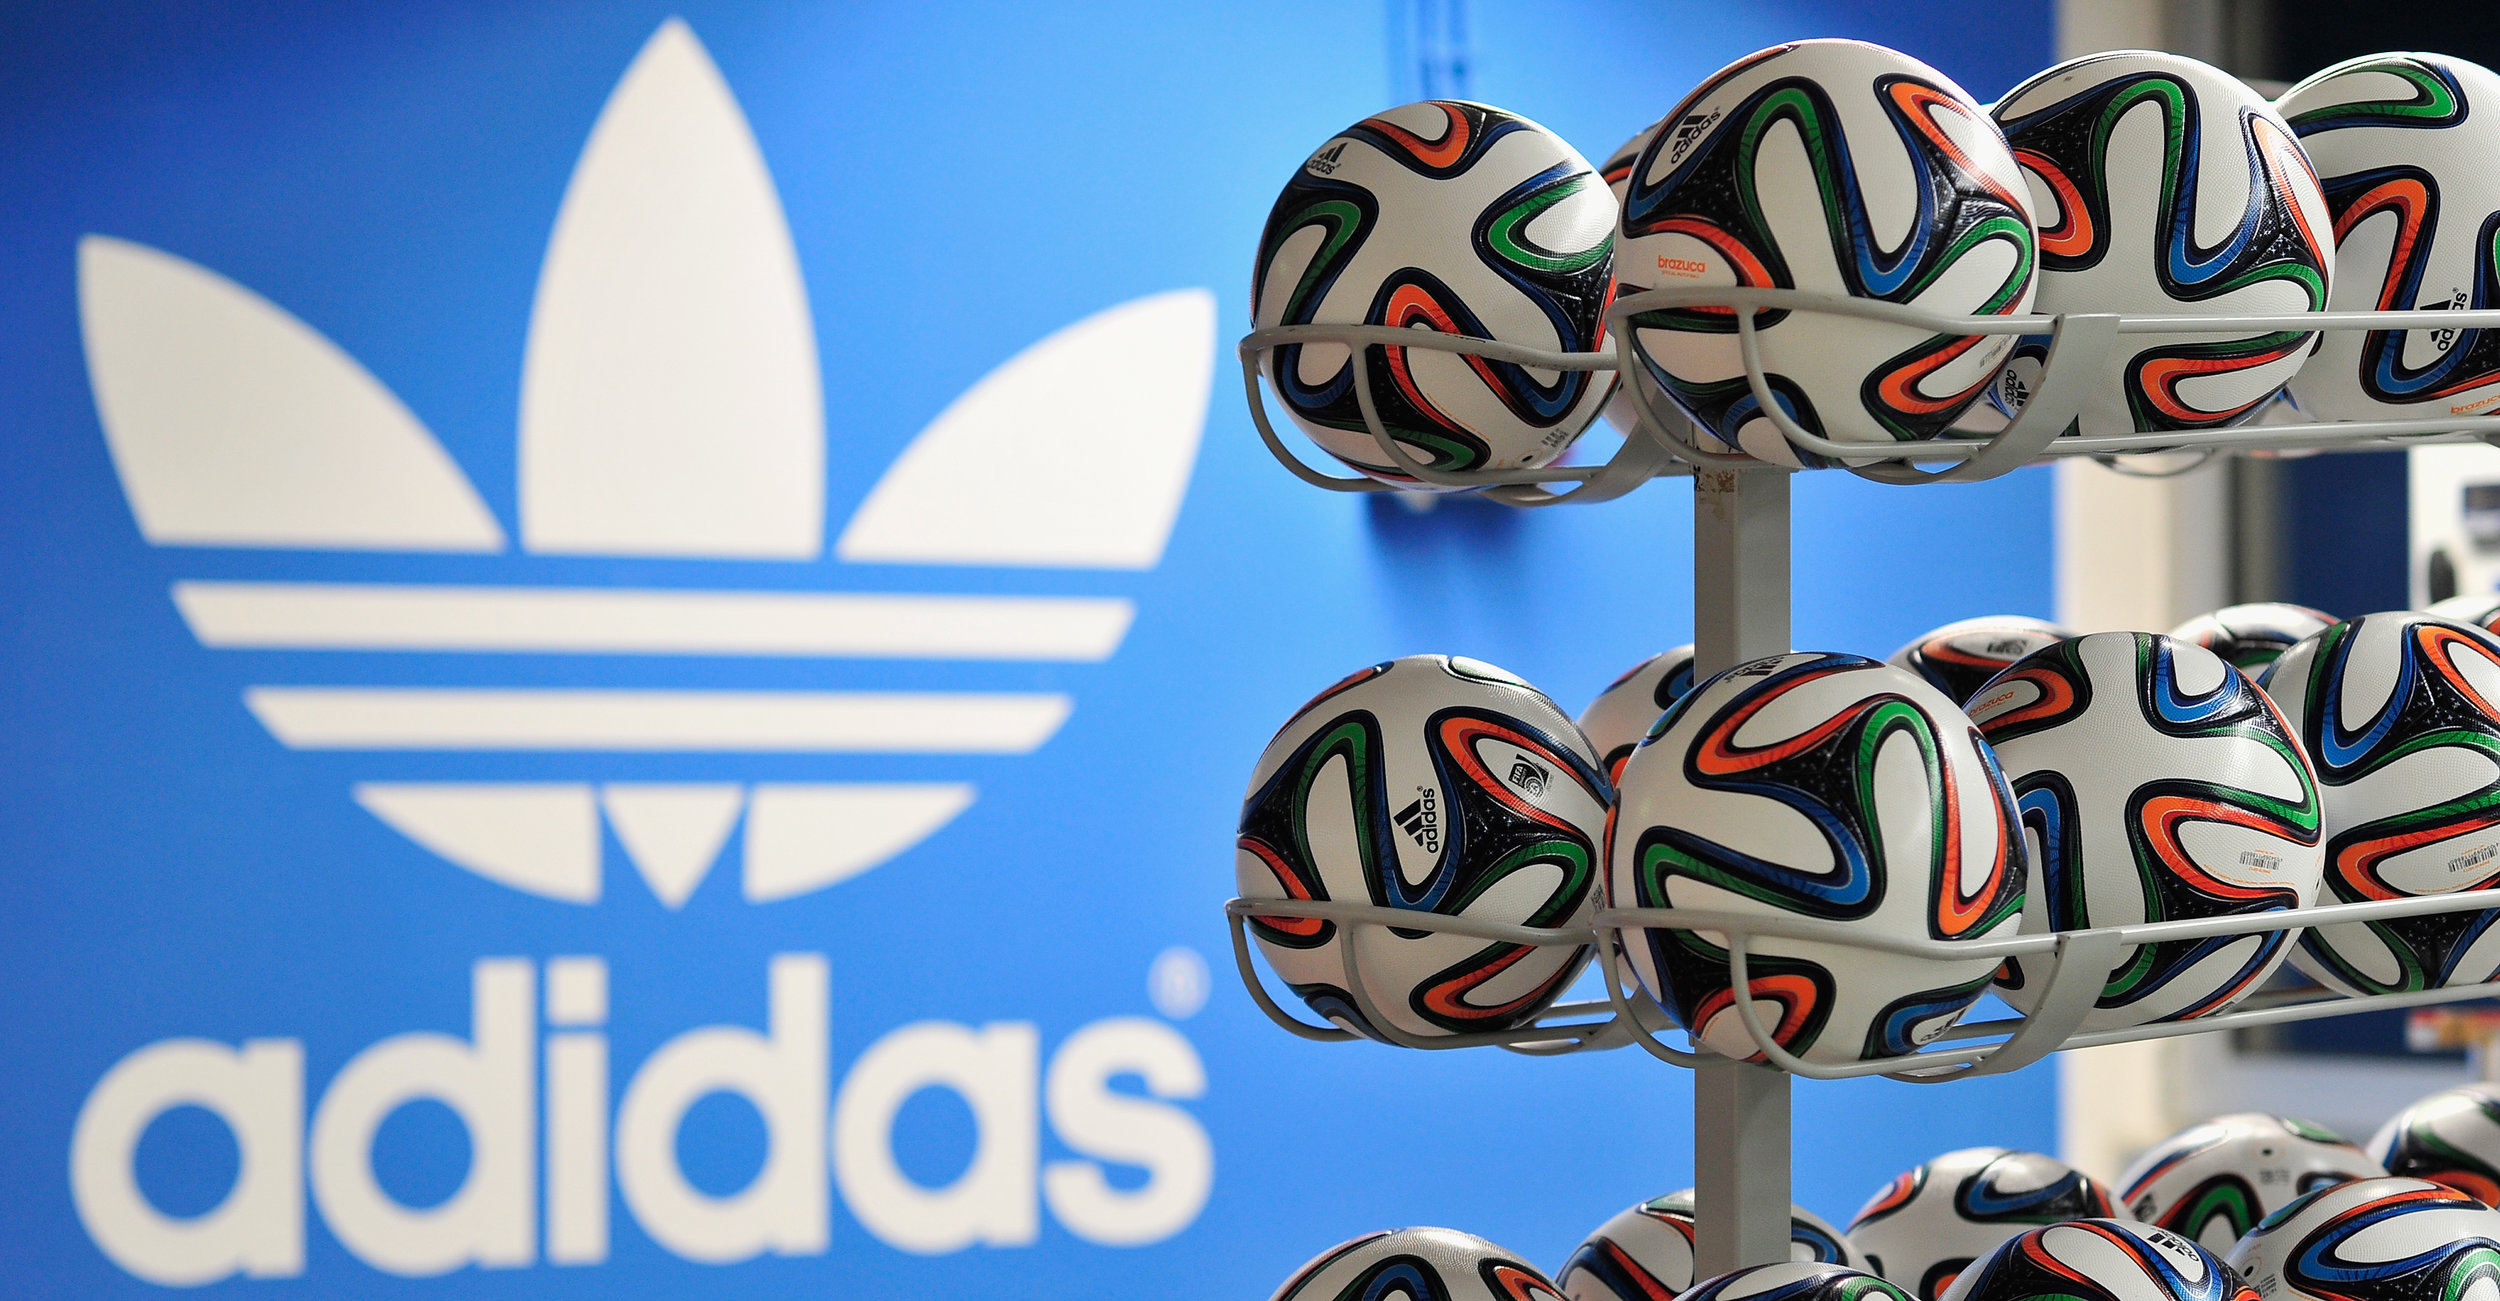 World Cup 2014 Brazuca replica match balls by   Adidas   Photo   by Getty Images.